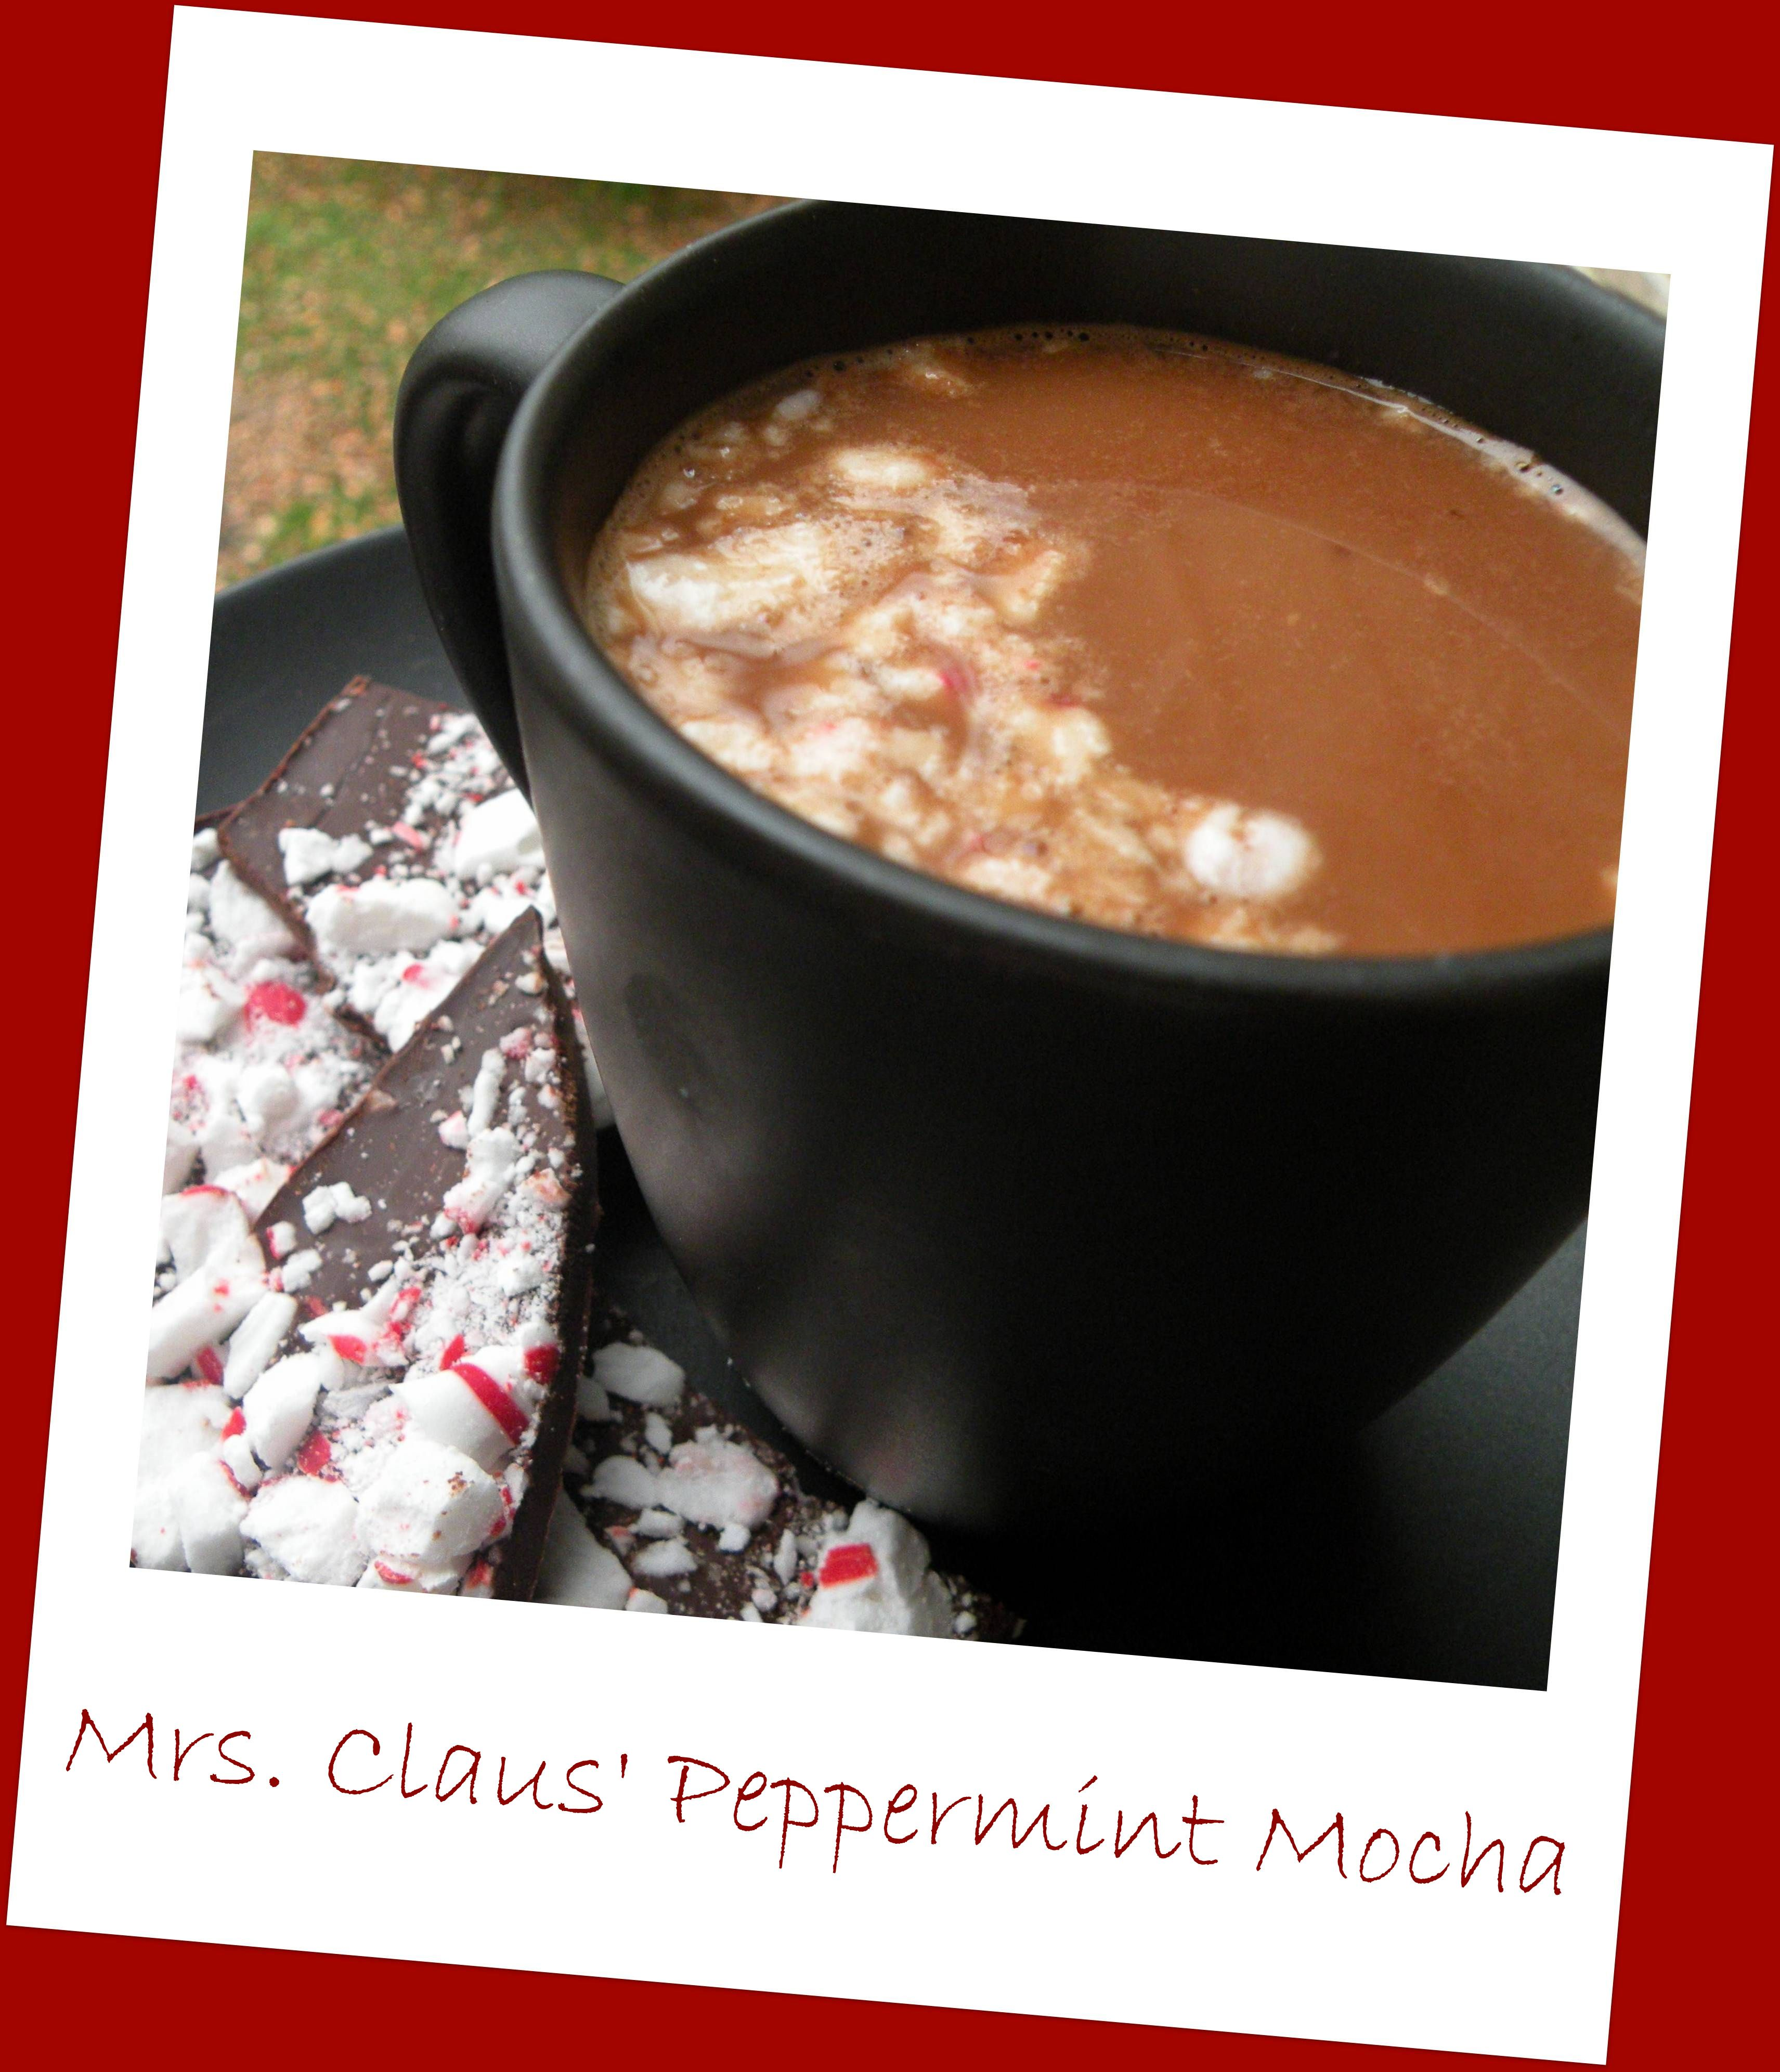 Mrs. Claus' Peppermint Mocha made with real chocolate, only 4 ingredients! So delicious and simple.